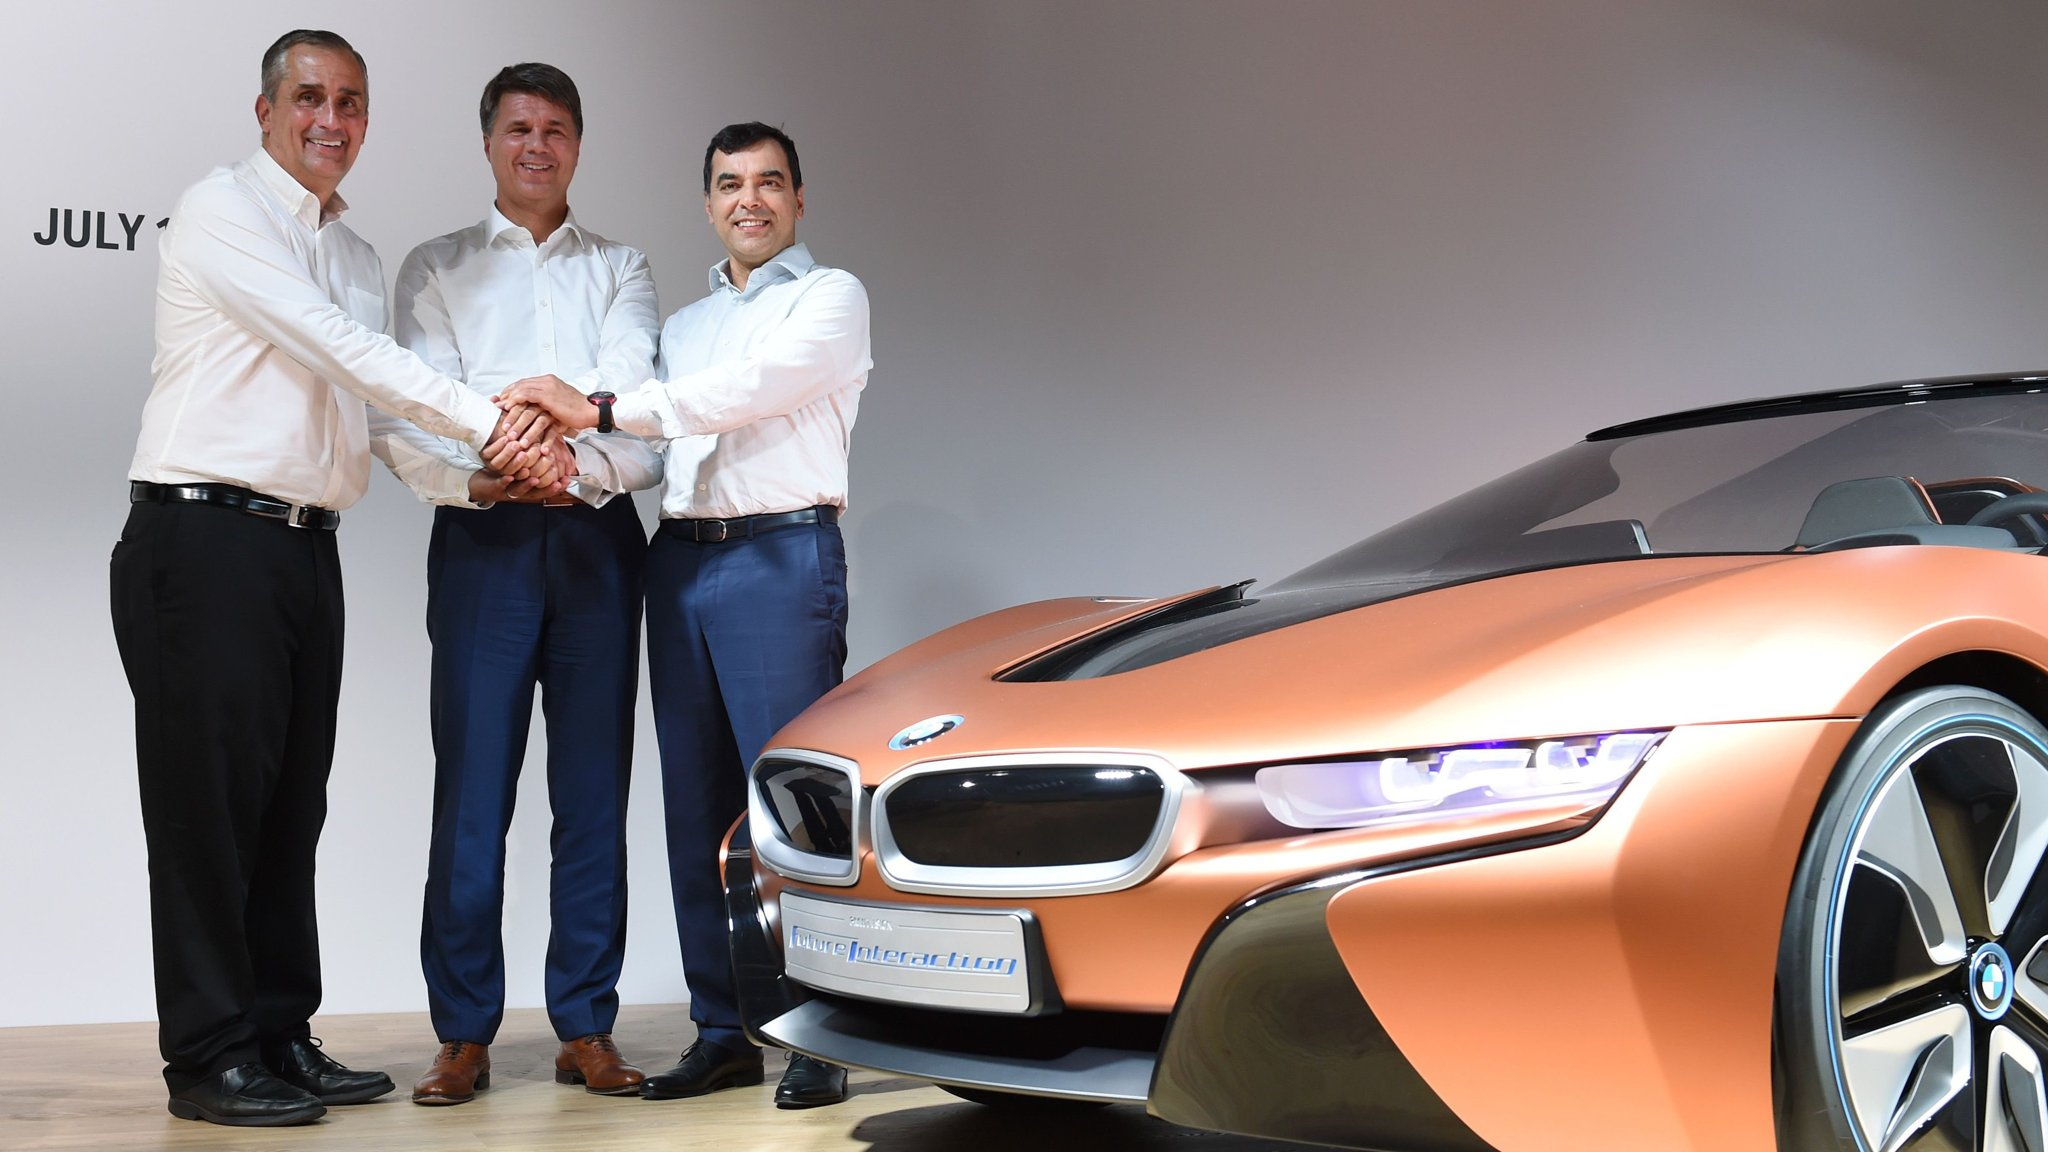 Bmw Sets 2021 Goal For Driverless Cars Financial Times